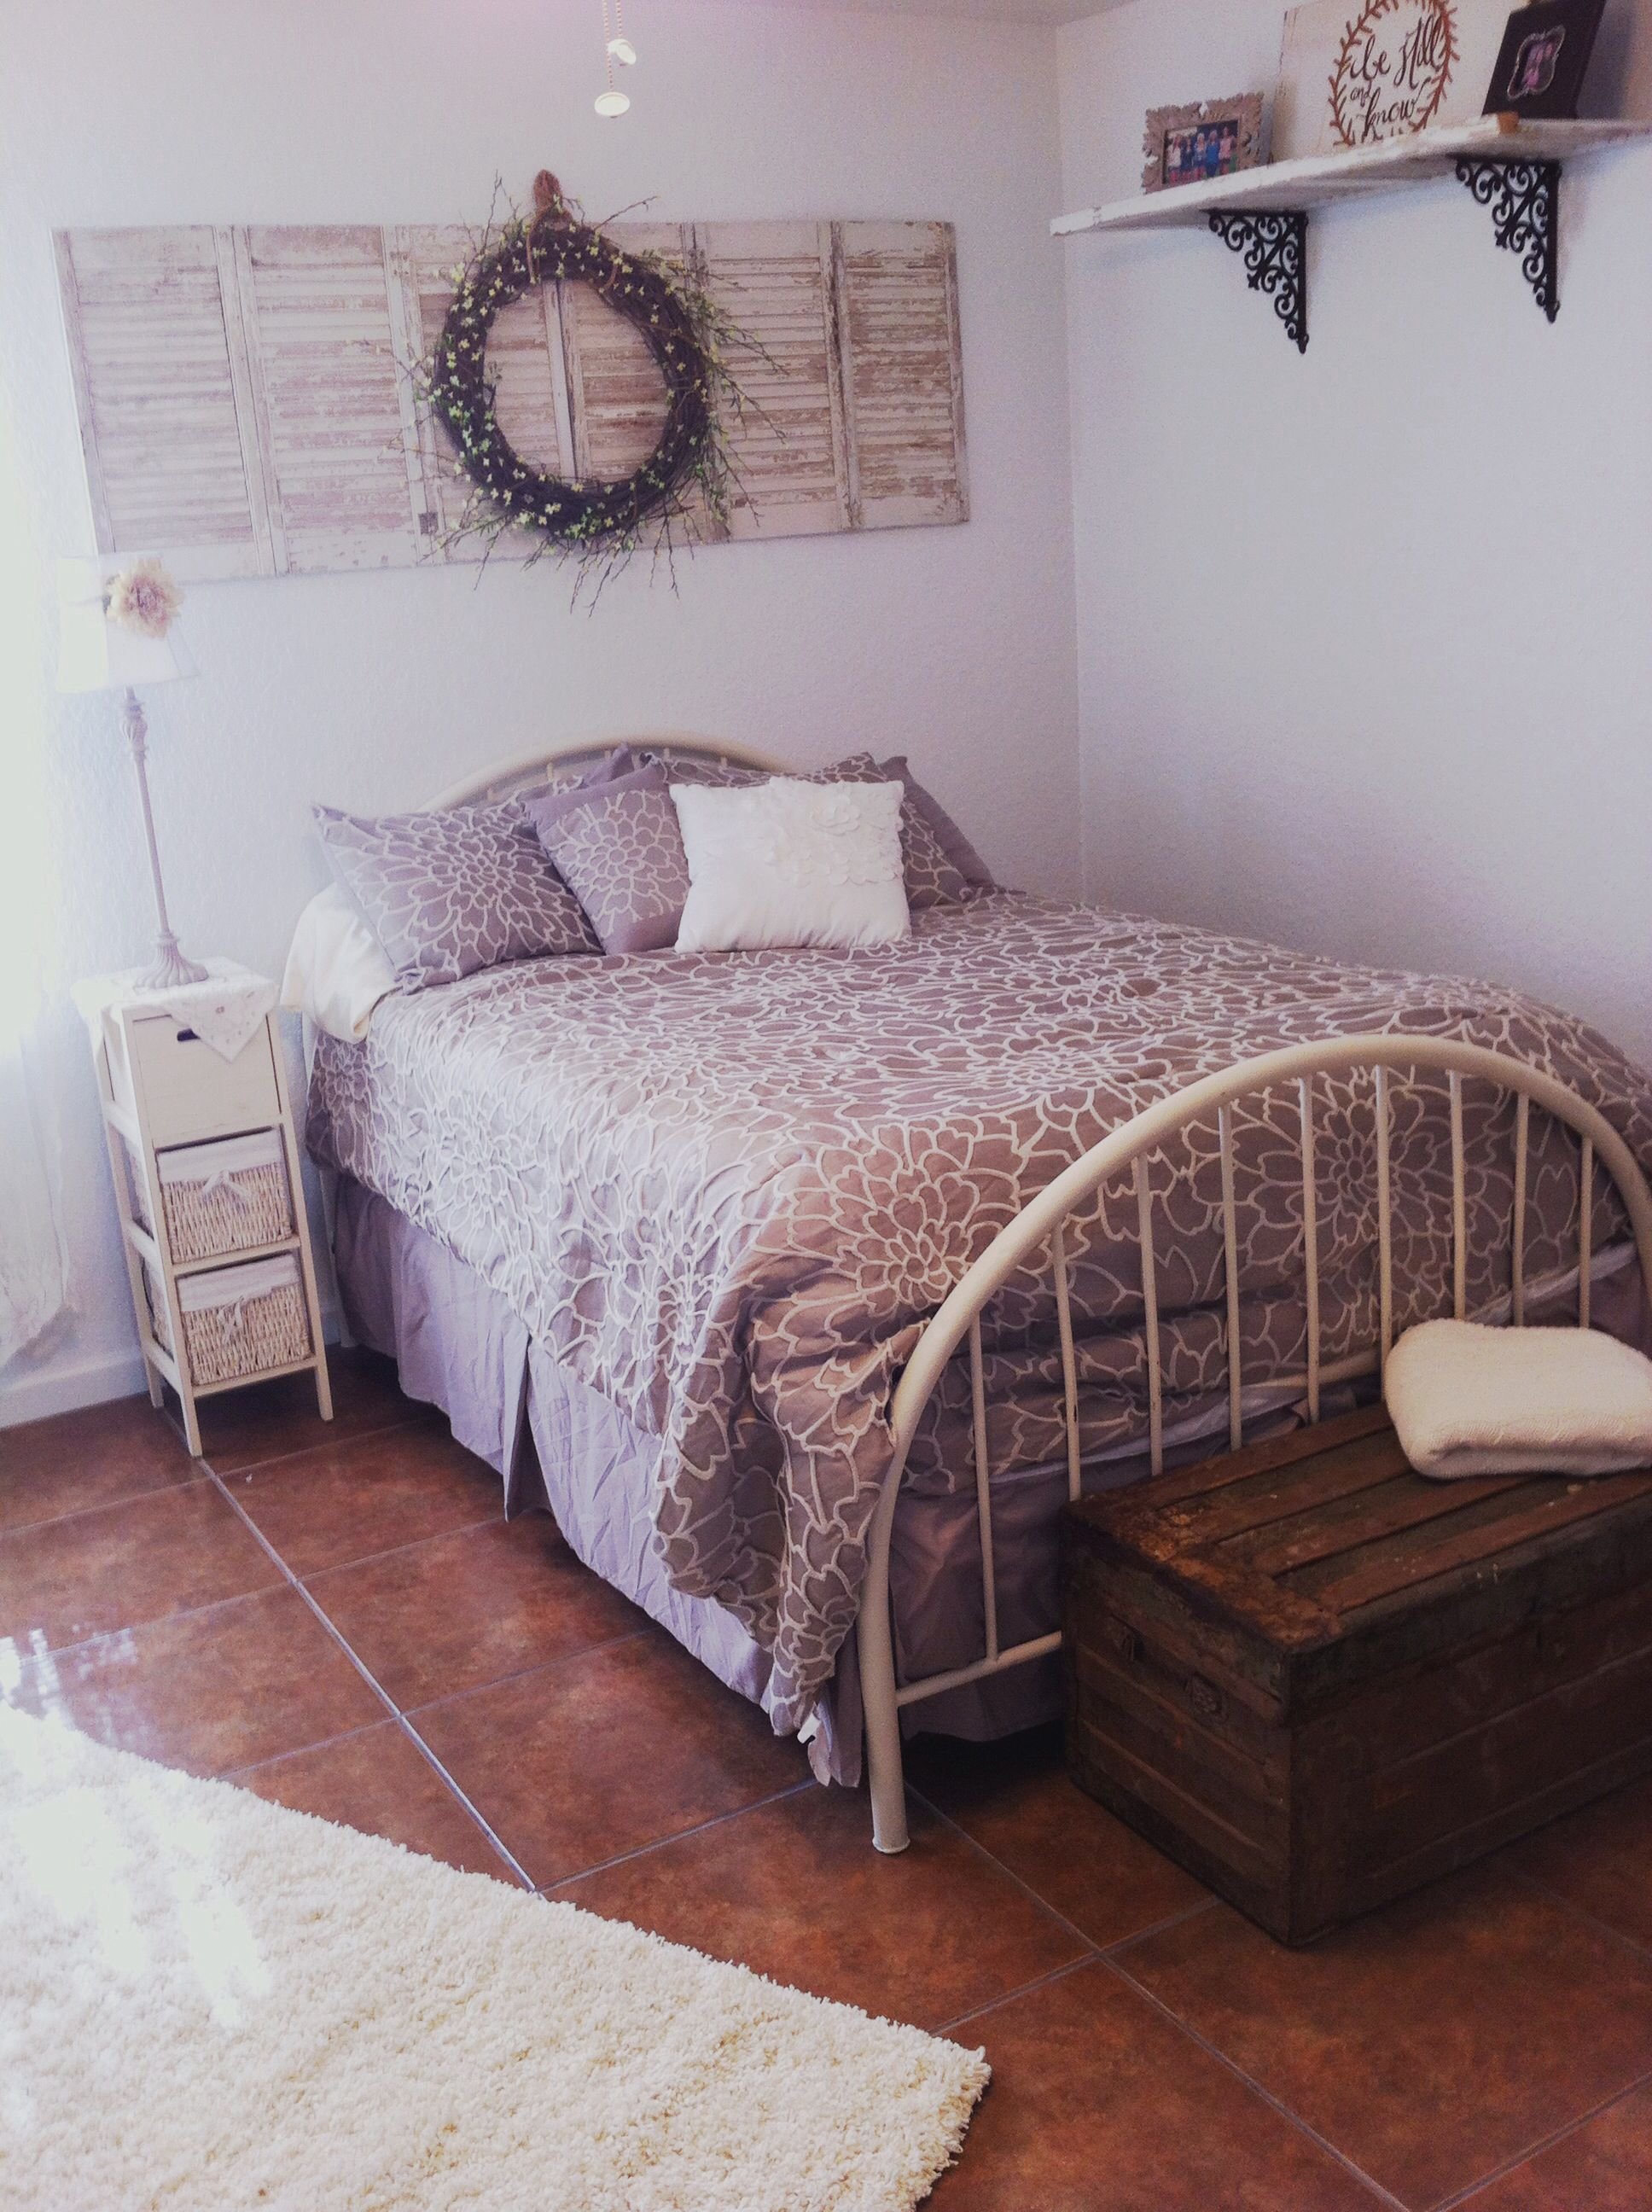 Overbed Bedroom Furniture Taupe Tan White Bedroom Shutters Over Bed With Diy Wreath